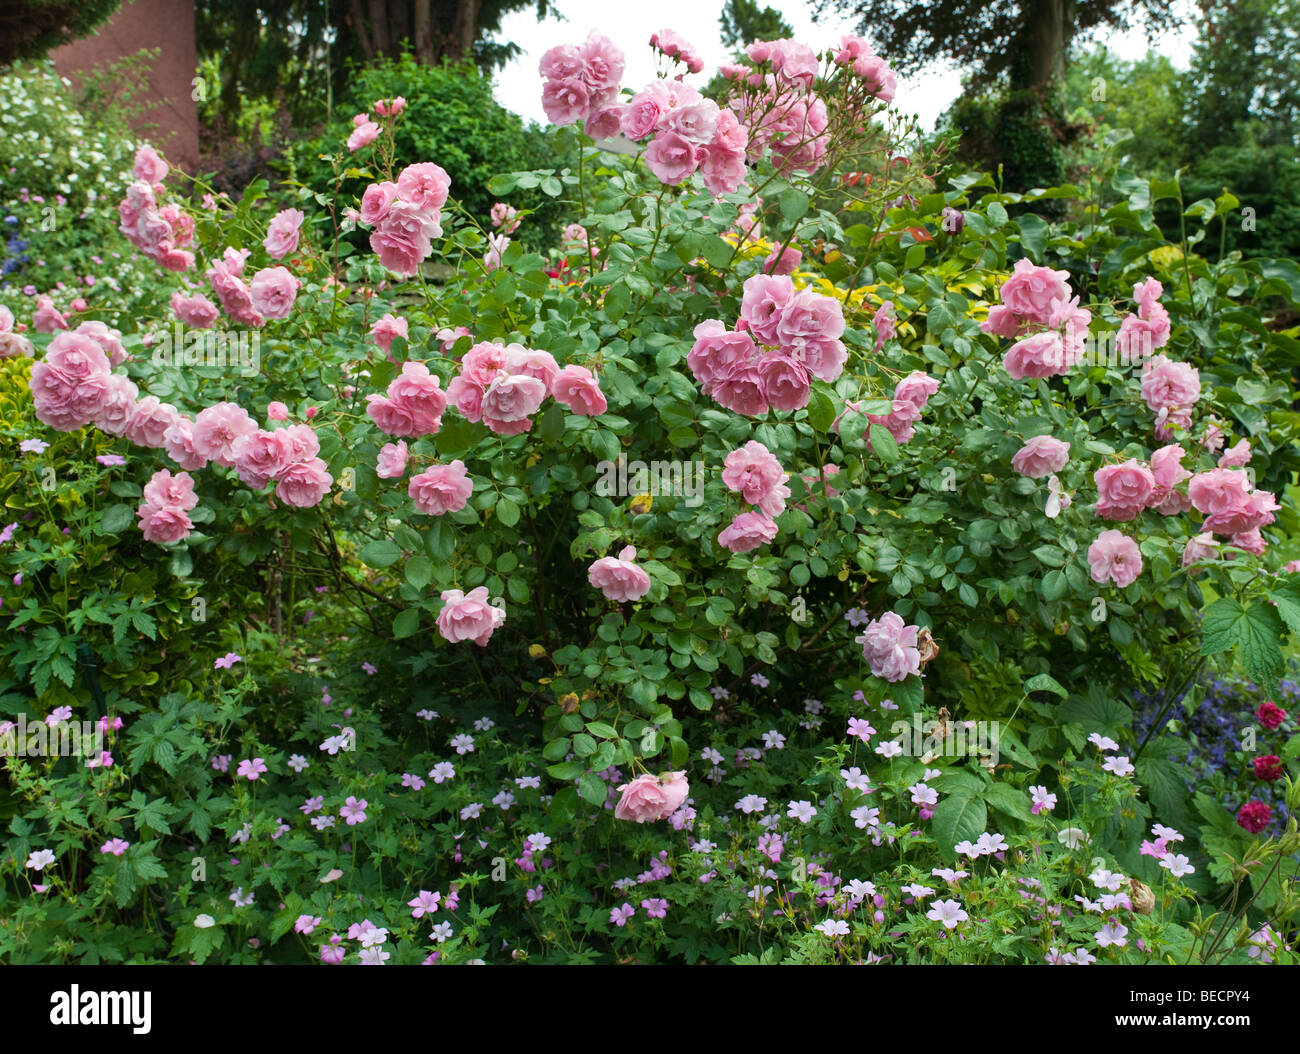 Shrub rose in cottage garden with geraniums in foreground. - Stock Image